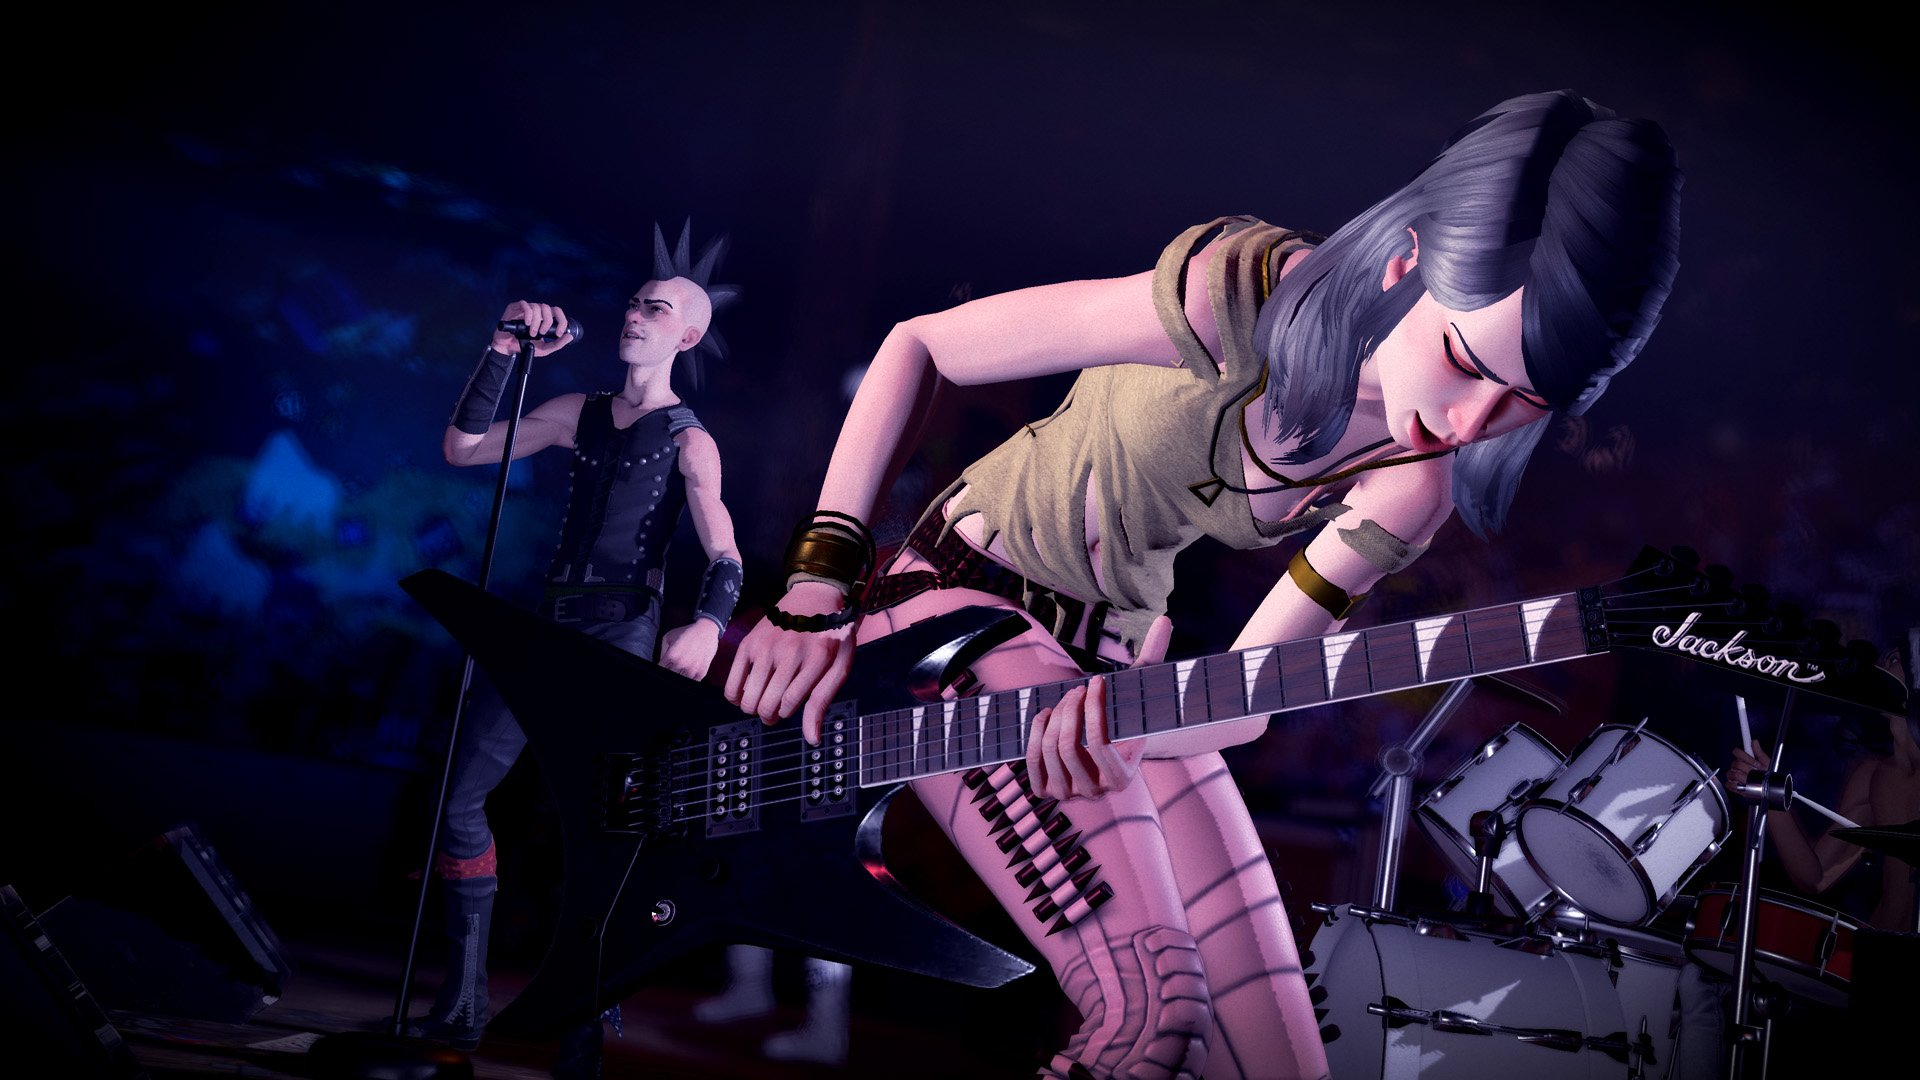 Rock Band 4 celebrates its third birthday with track skins screenshot